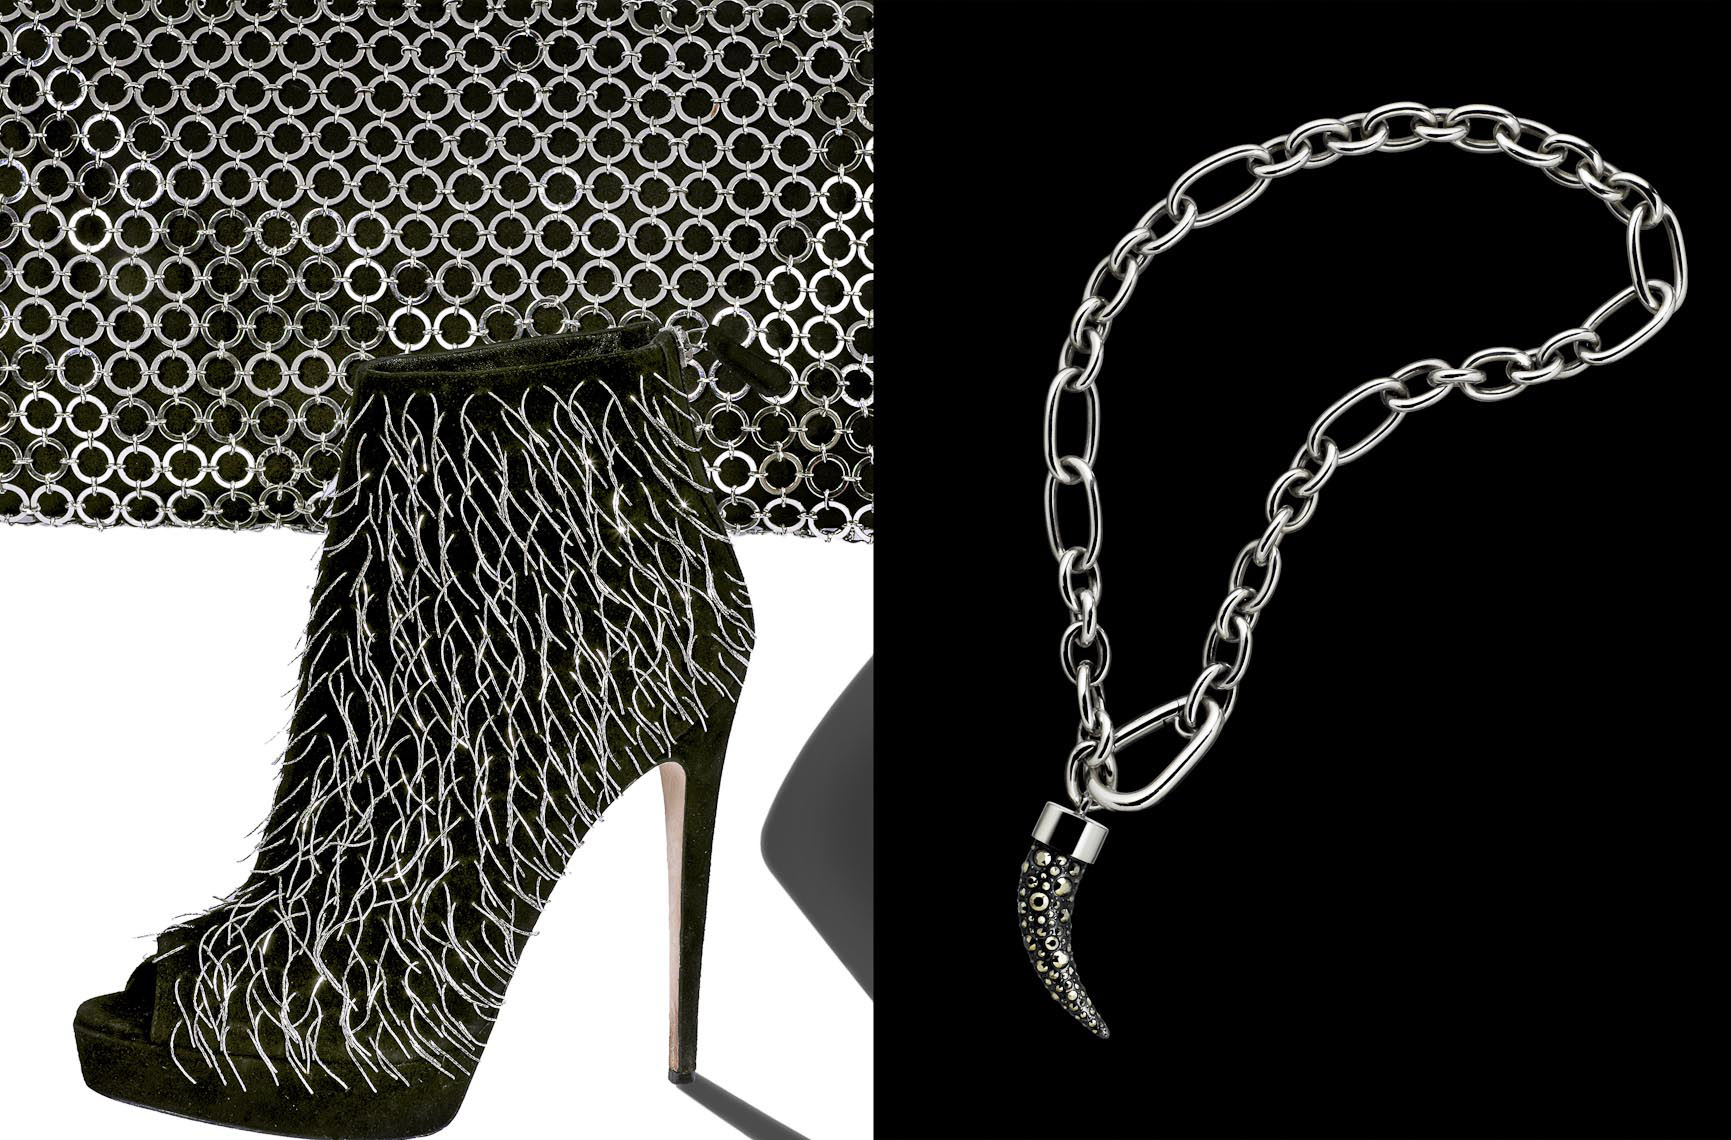 Accessories Still Life, Ankle Boot and Necklace